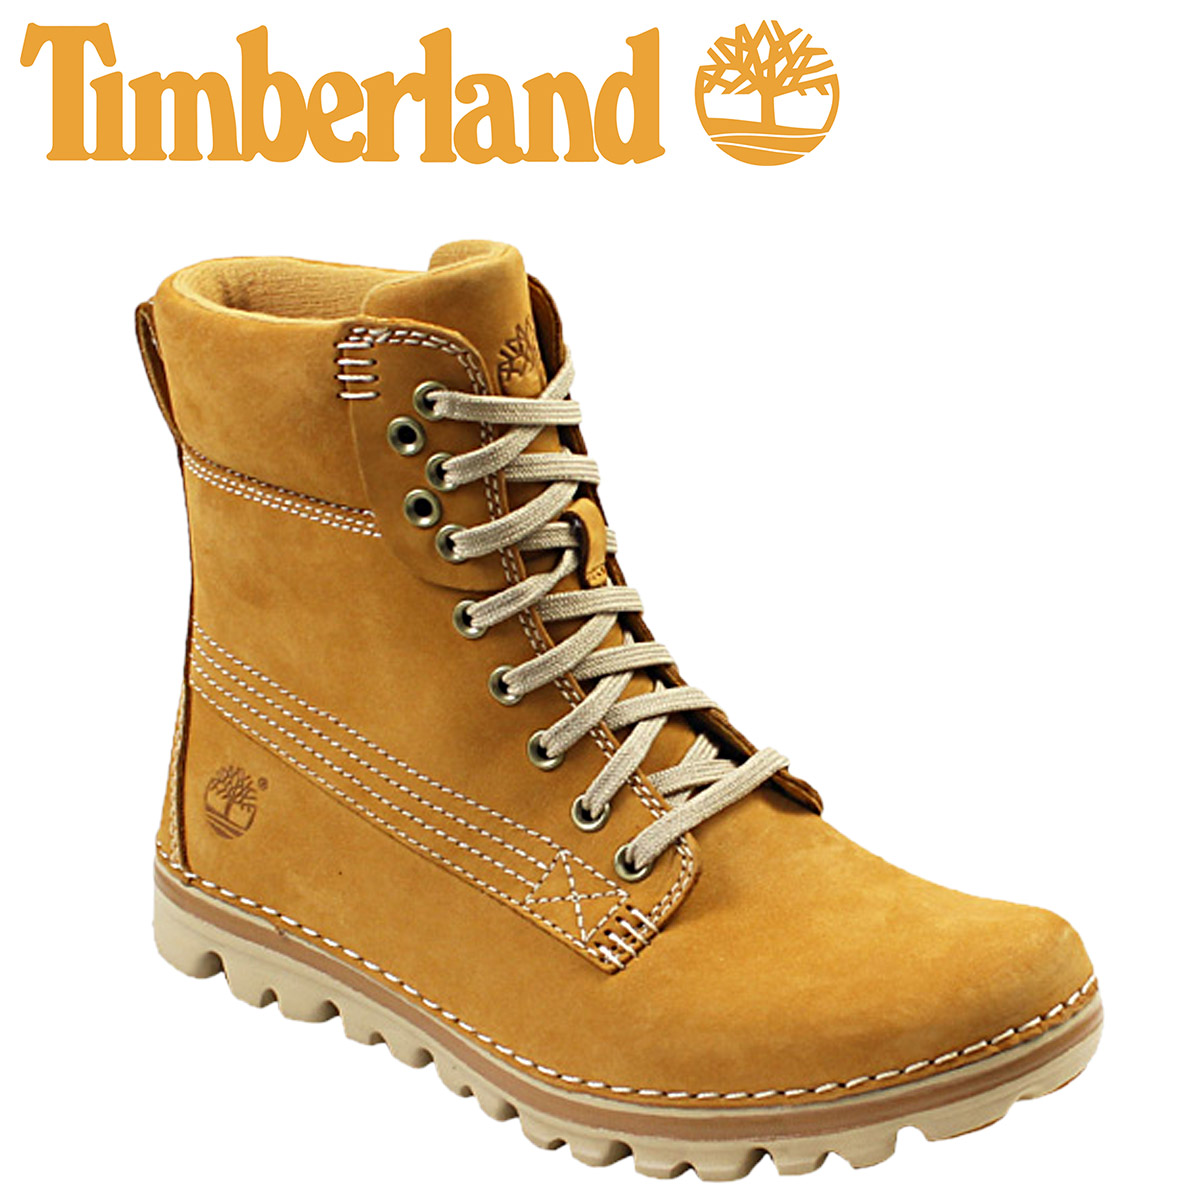 Sugar Online Shop   SOLD OUT  Timberland Timberland Womens kids Earthkeepers  Brooke t 6-inch classic  wheat  EARTHKEEPERS BROOKTON 6INCH CLASSIC nubuck  ... 1d0cdb8ec